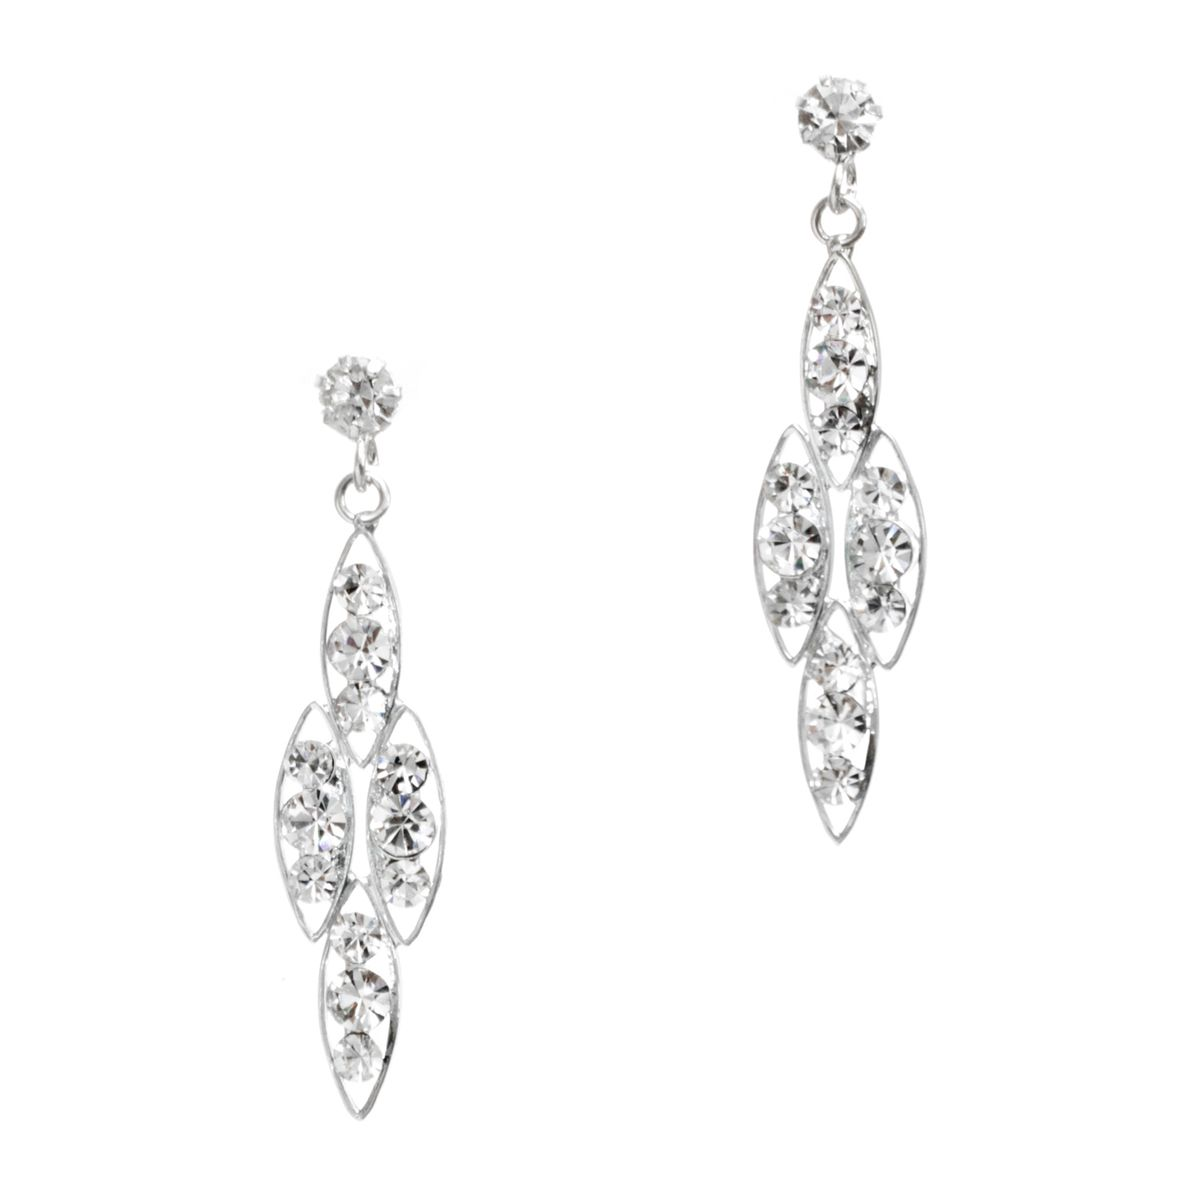 These silver and chandelier earrings are luxurious elegance and refinement. Crystal accented posts support four marquis shapes filled with glimmering clear crystals.